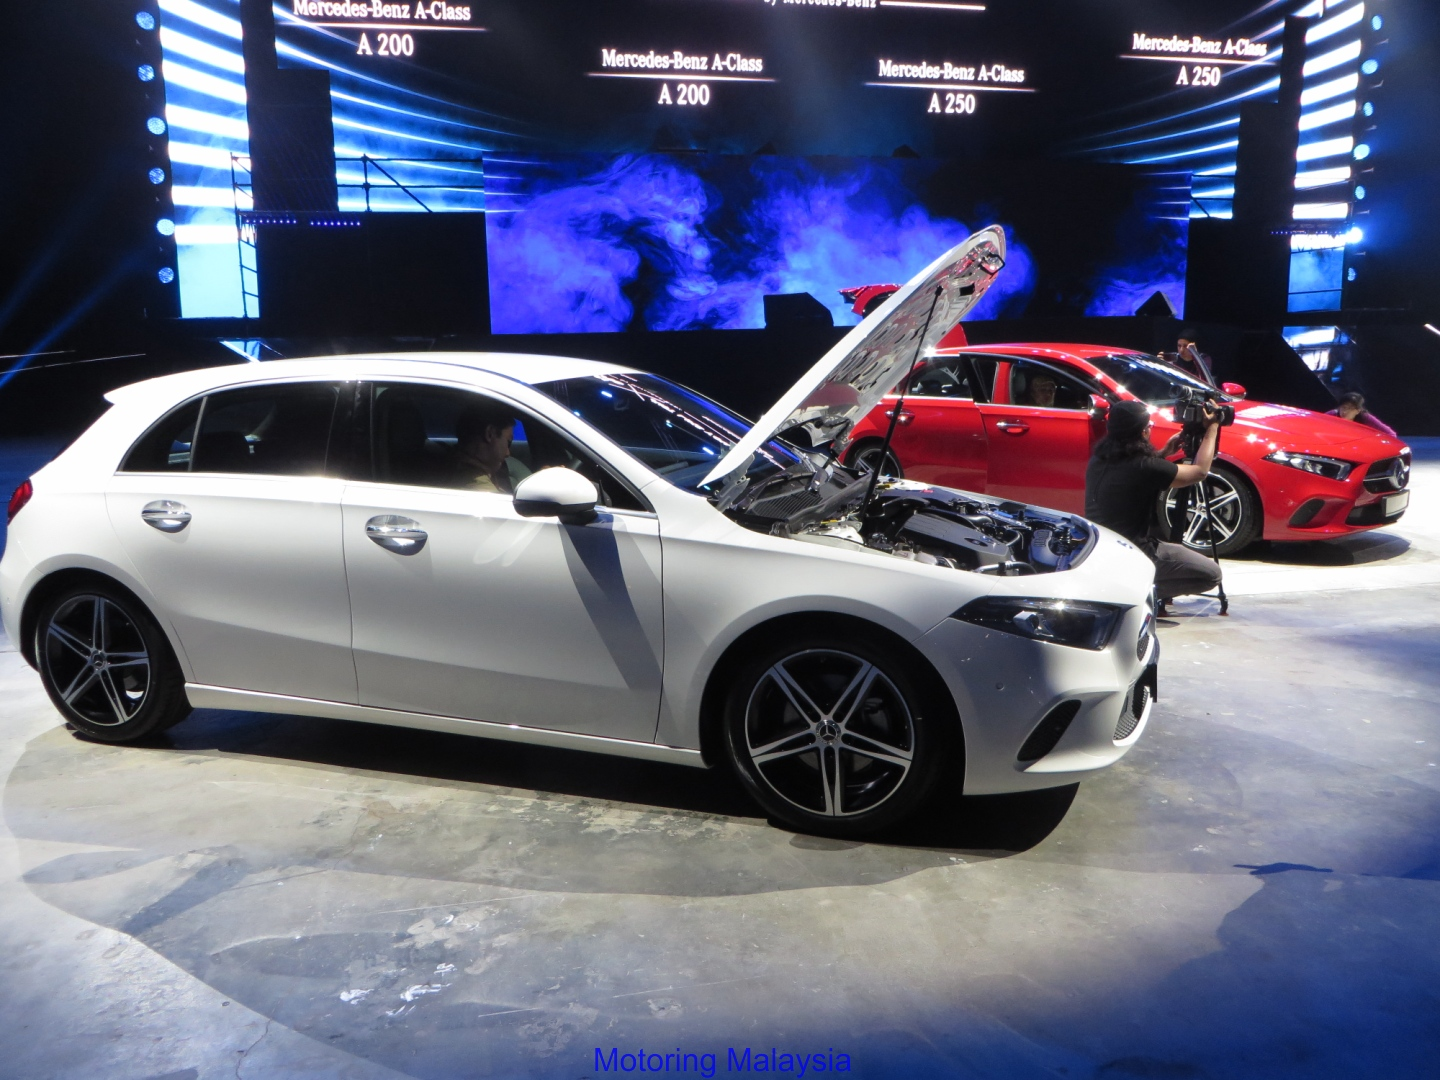 Motoring Malaysia The All New Mercedes Benz A Class Gets